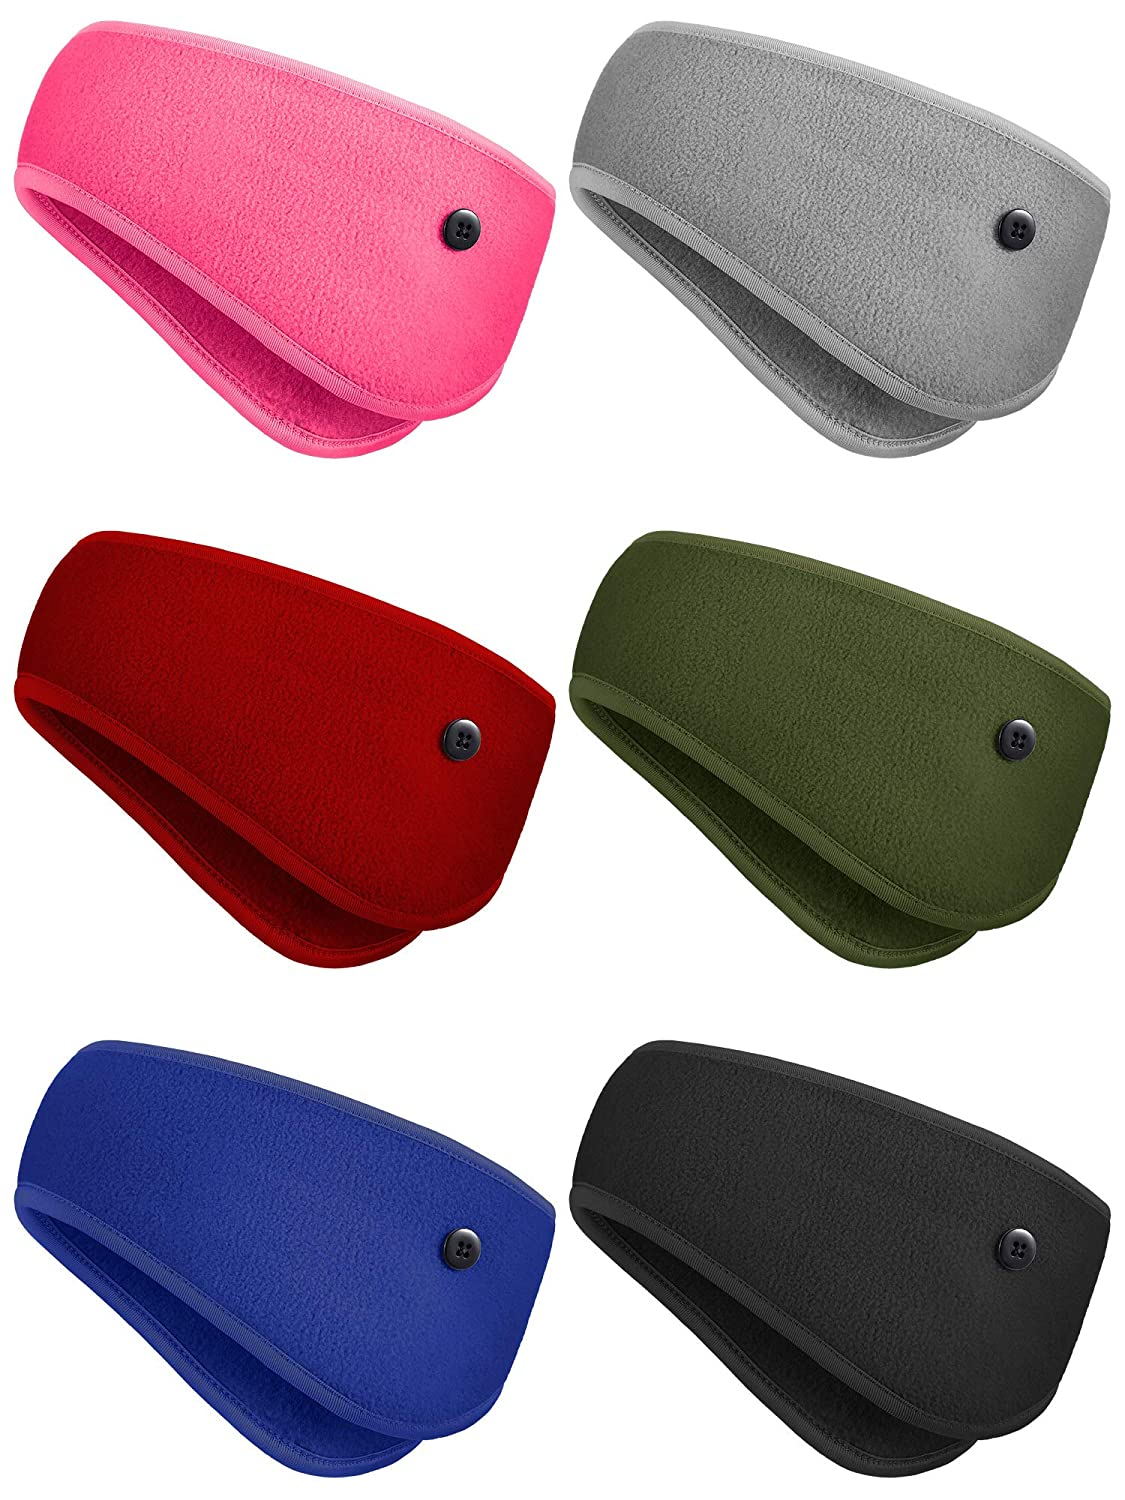 6 Pieces Ear Warmer Headband Button Headband Winter Ear Cover Winter Sports Headband Full Cover Ear Muff Headband for Yoga Outdoor Sports (Black, Gray, Sapphire Blue, Rose Red, Red, Army Green)